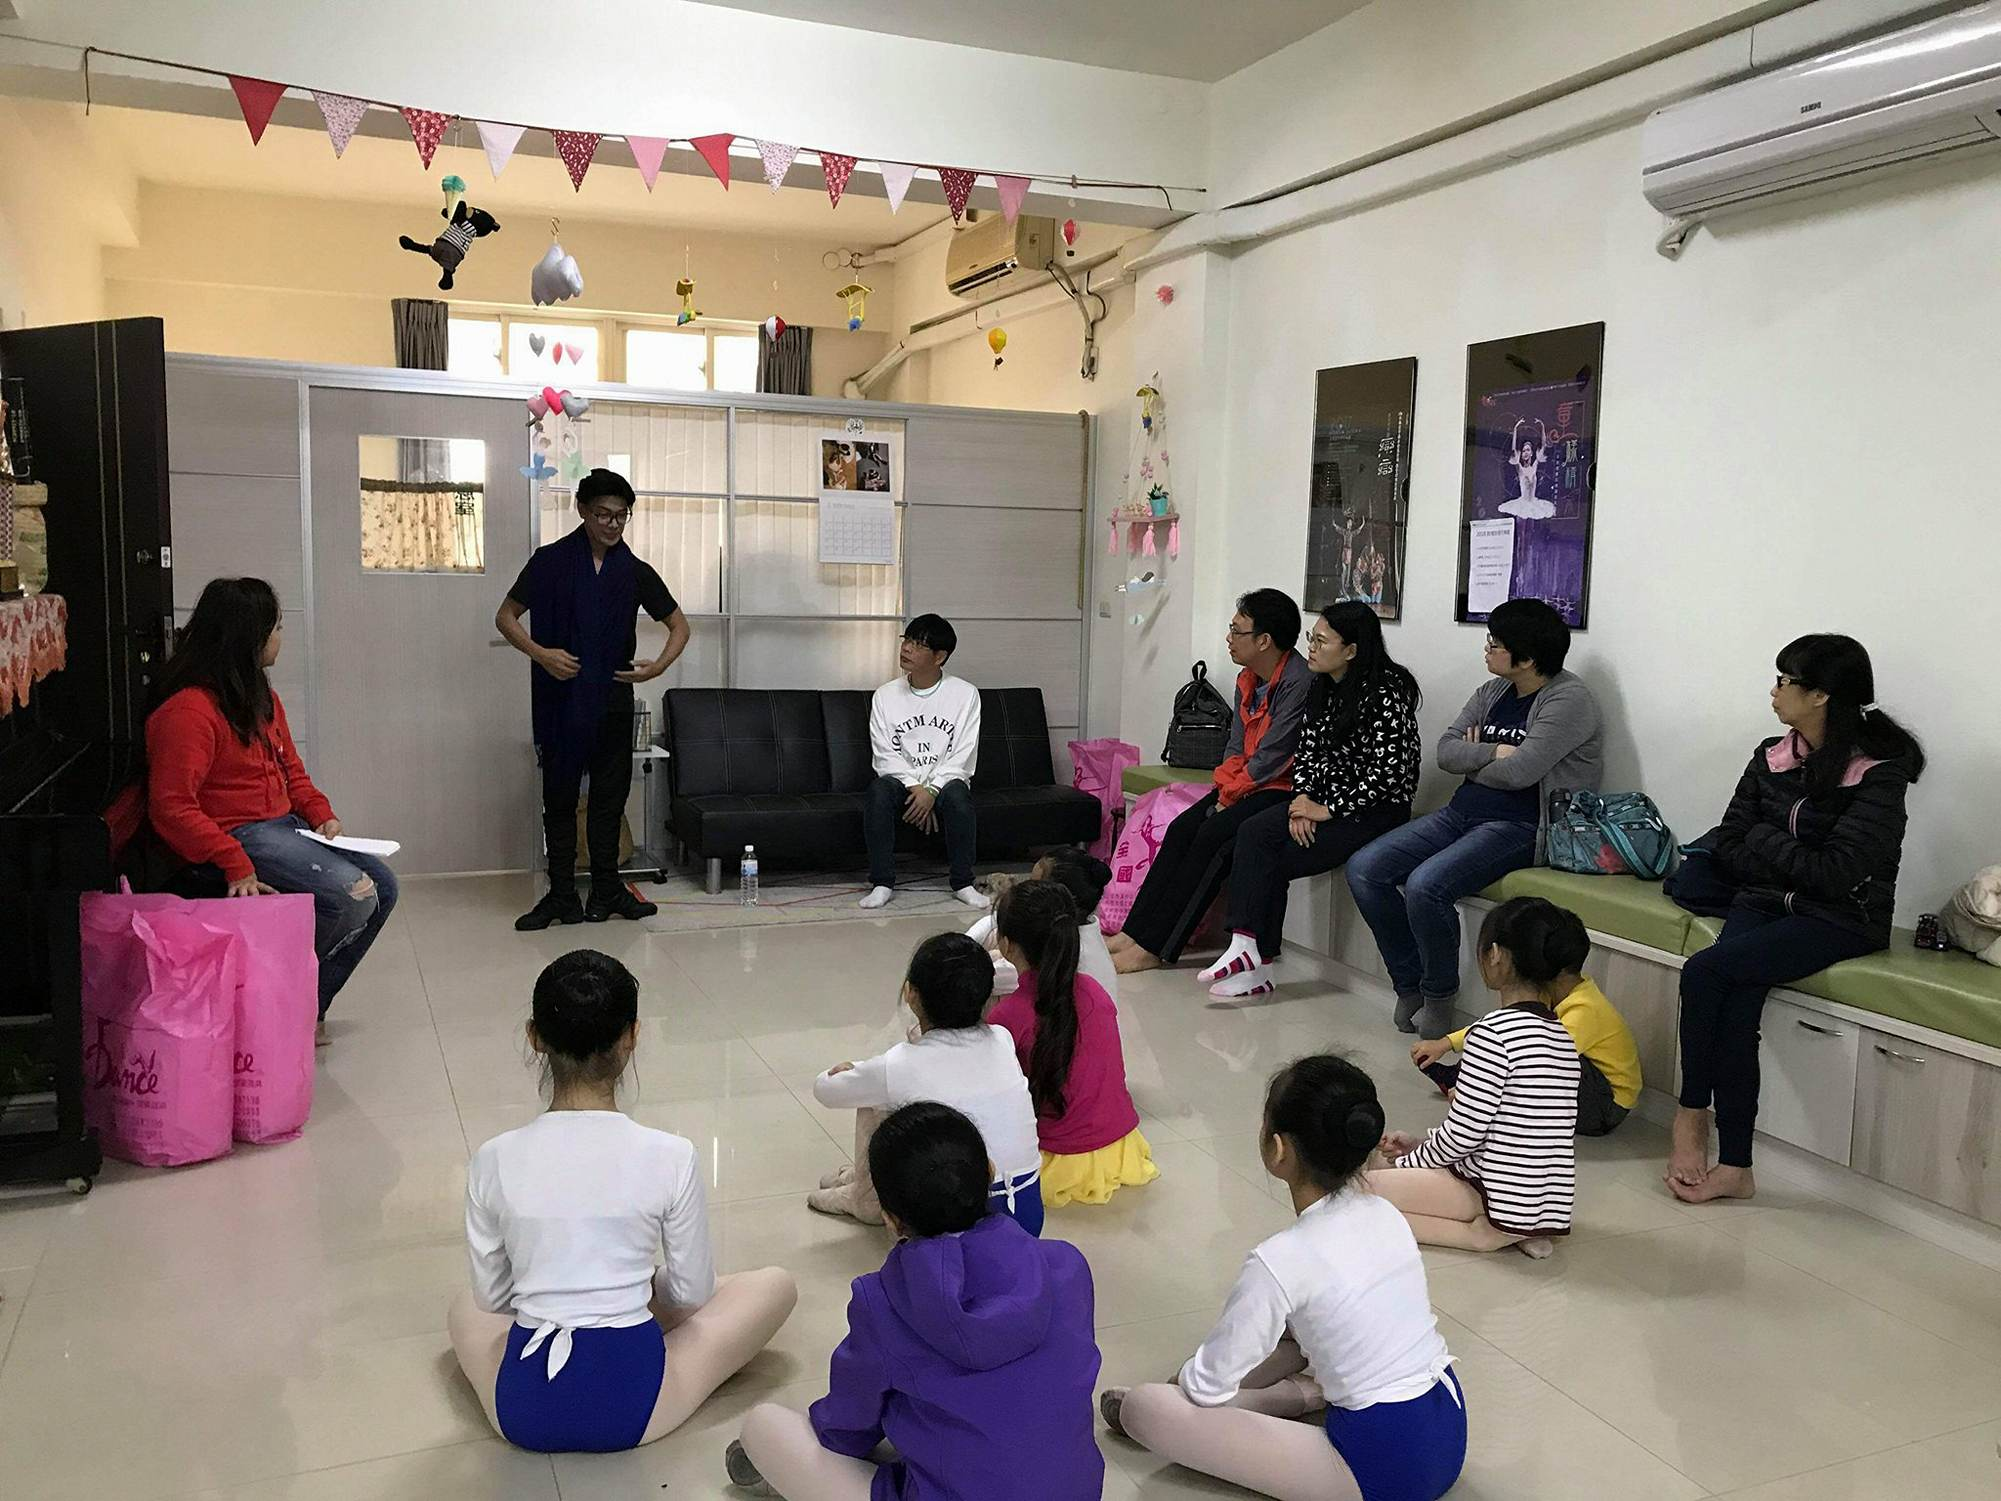 Ballet Manila co-artistic director Osias Barroso conducts one of the classes, as some parents also listen in, at the Zhongli Youth Ballet.